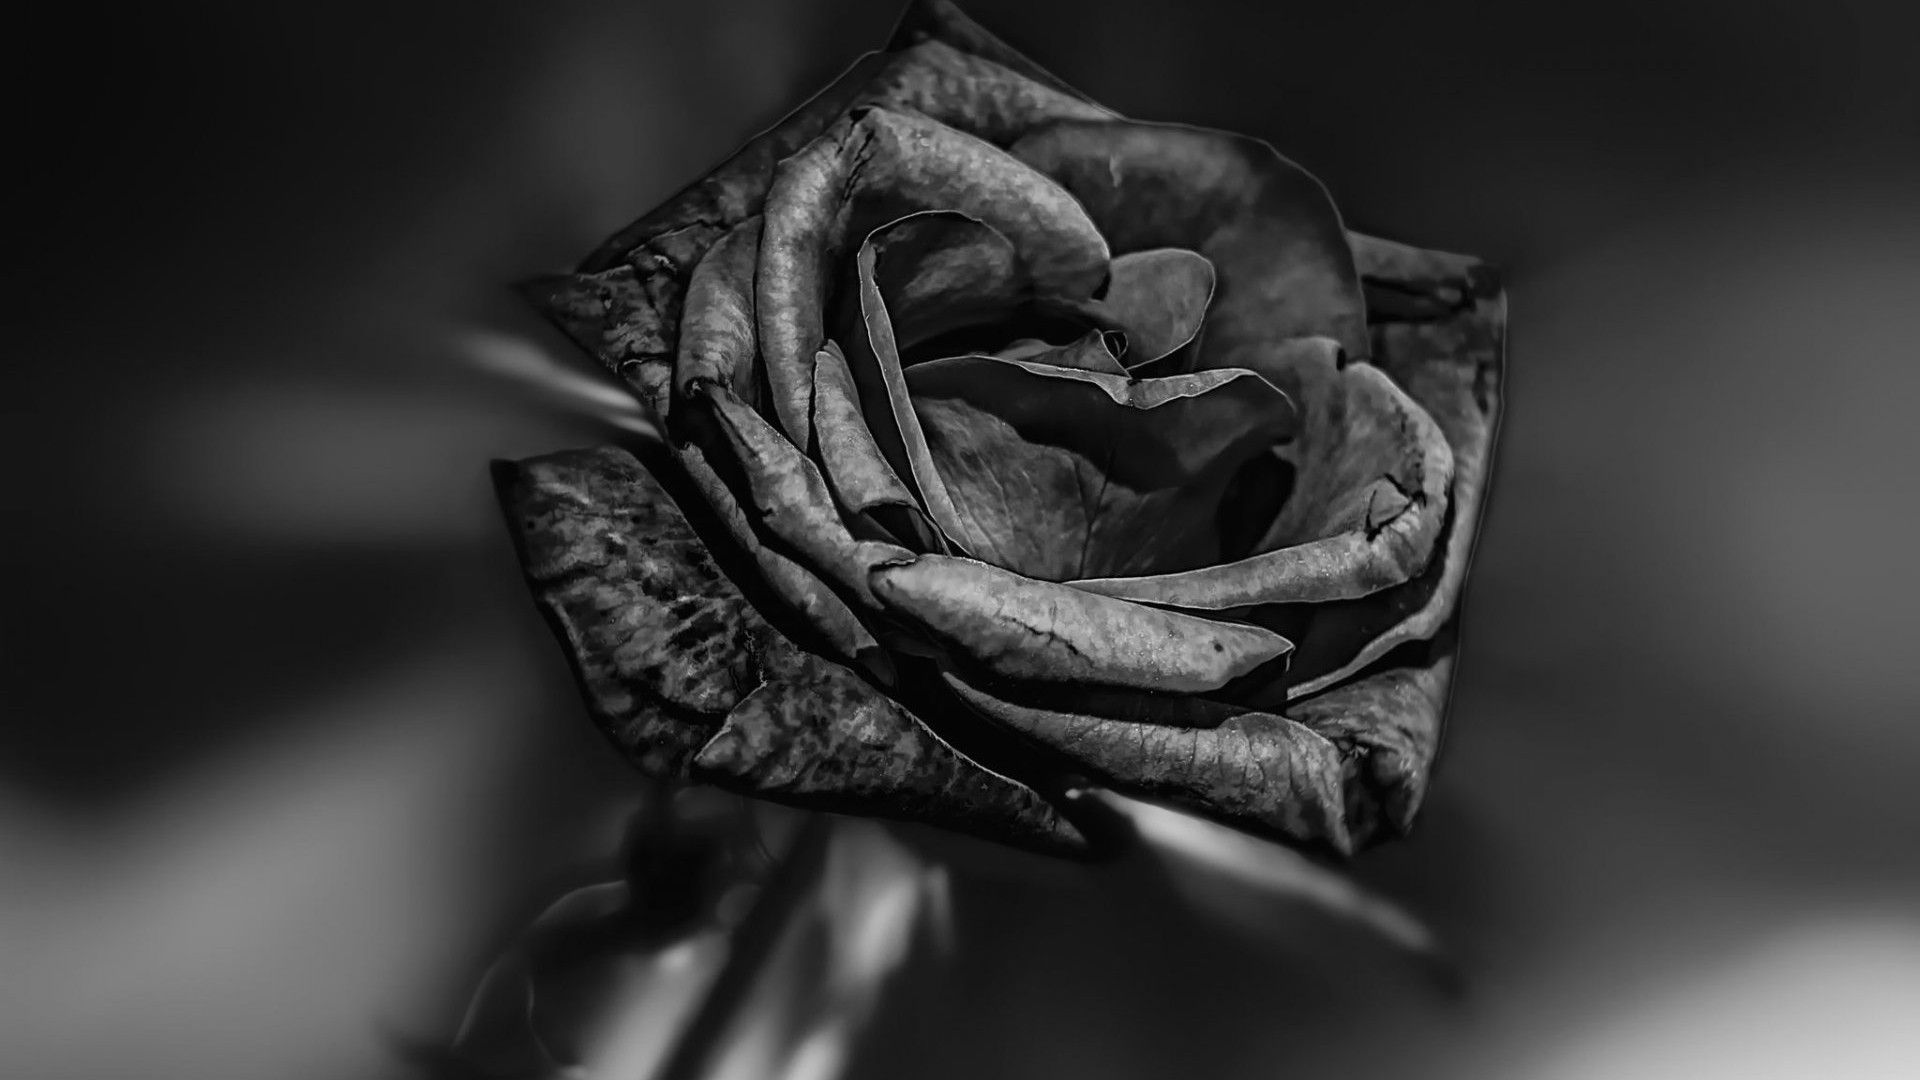 black rose hd wallpapers 1080p